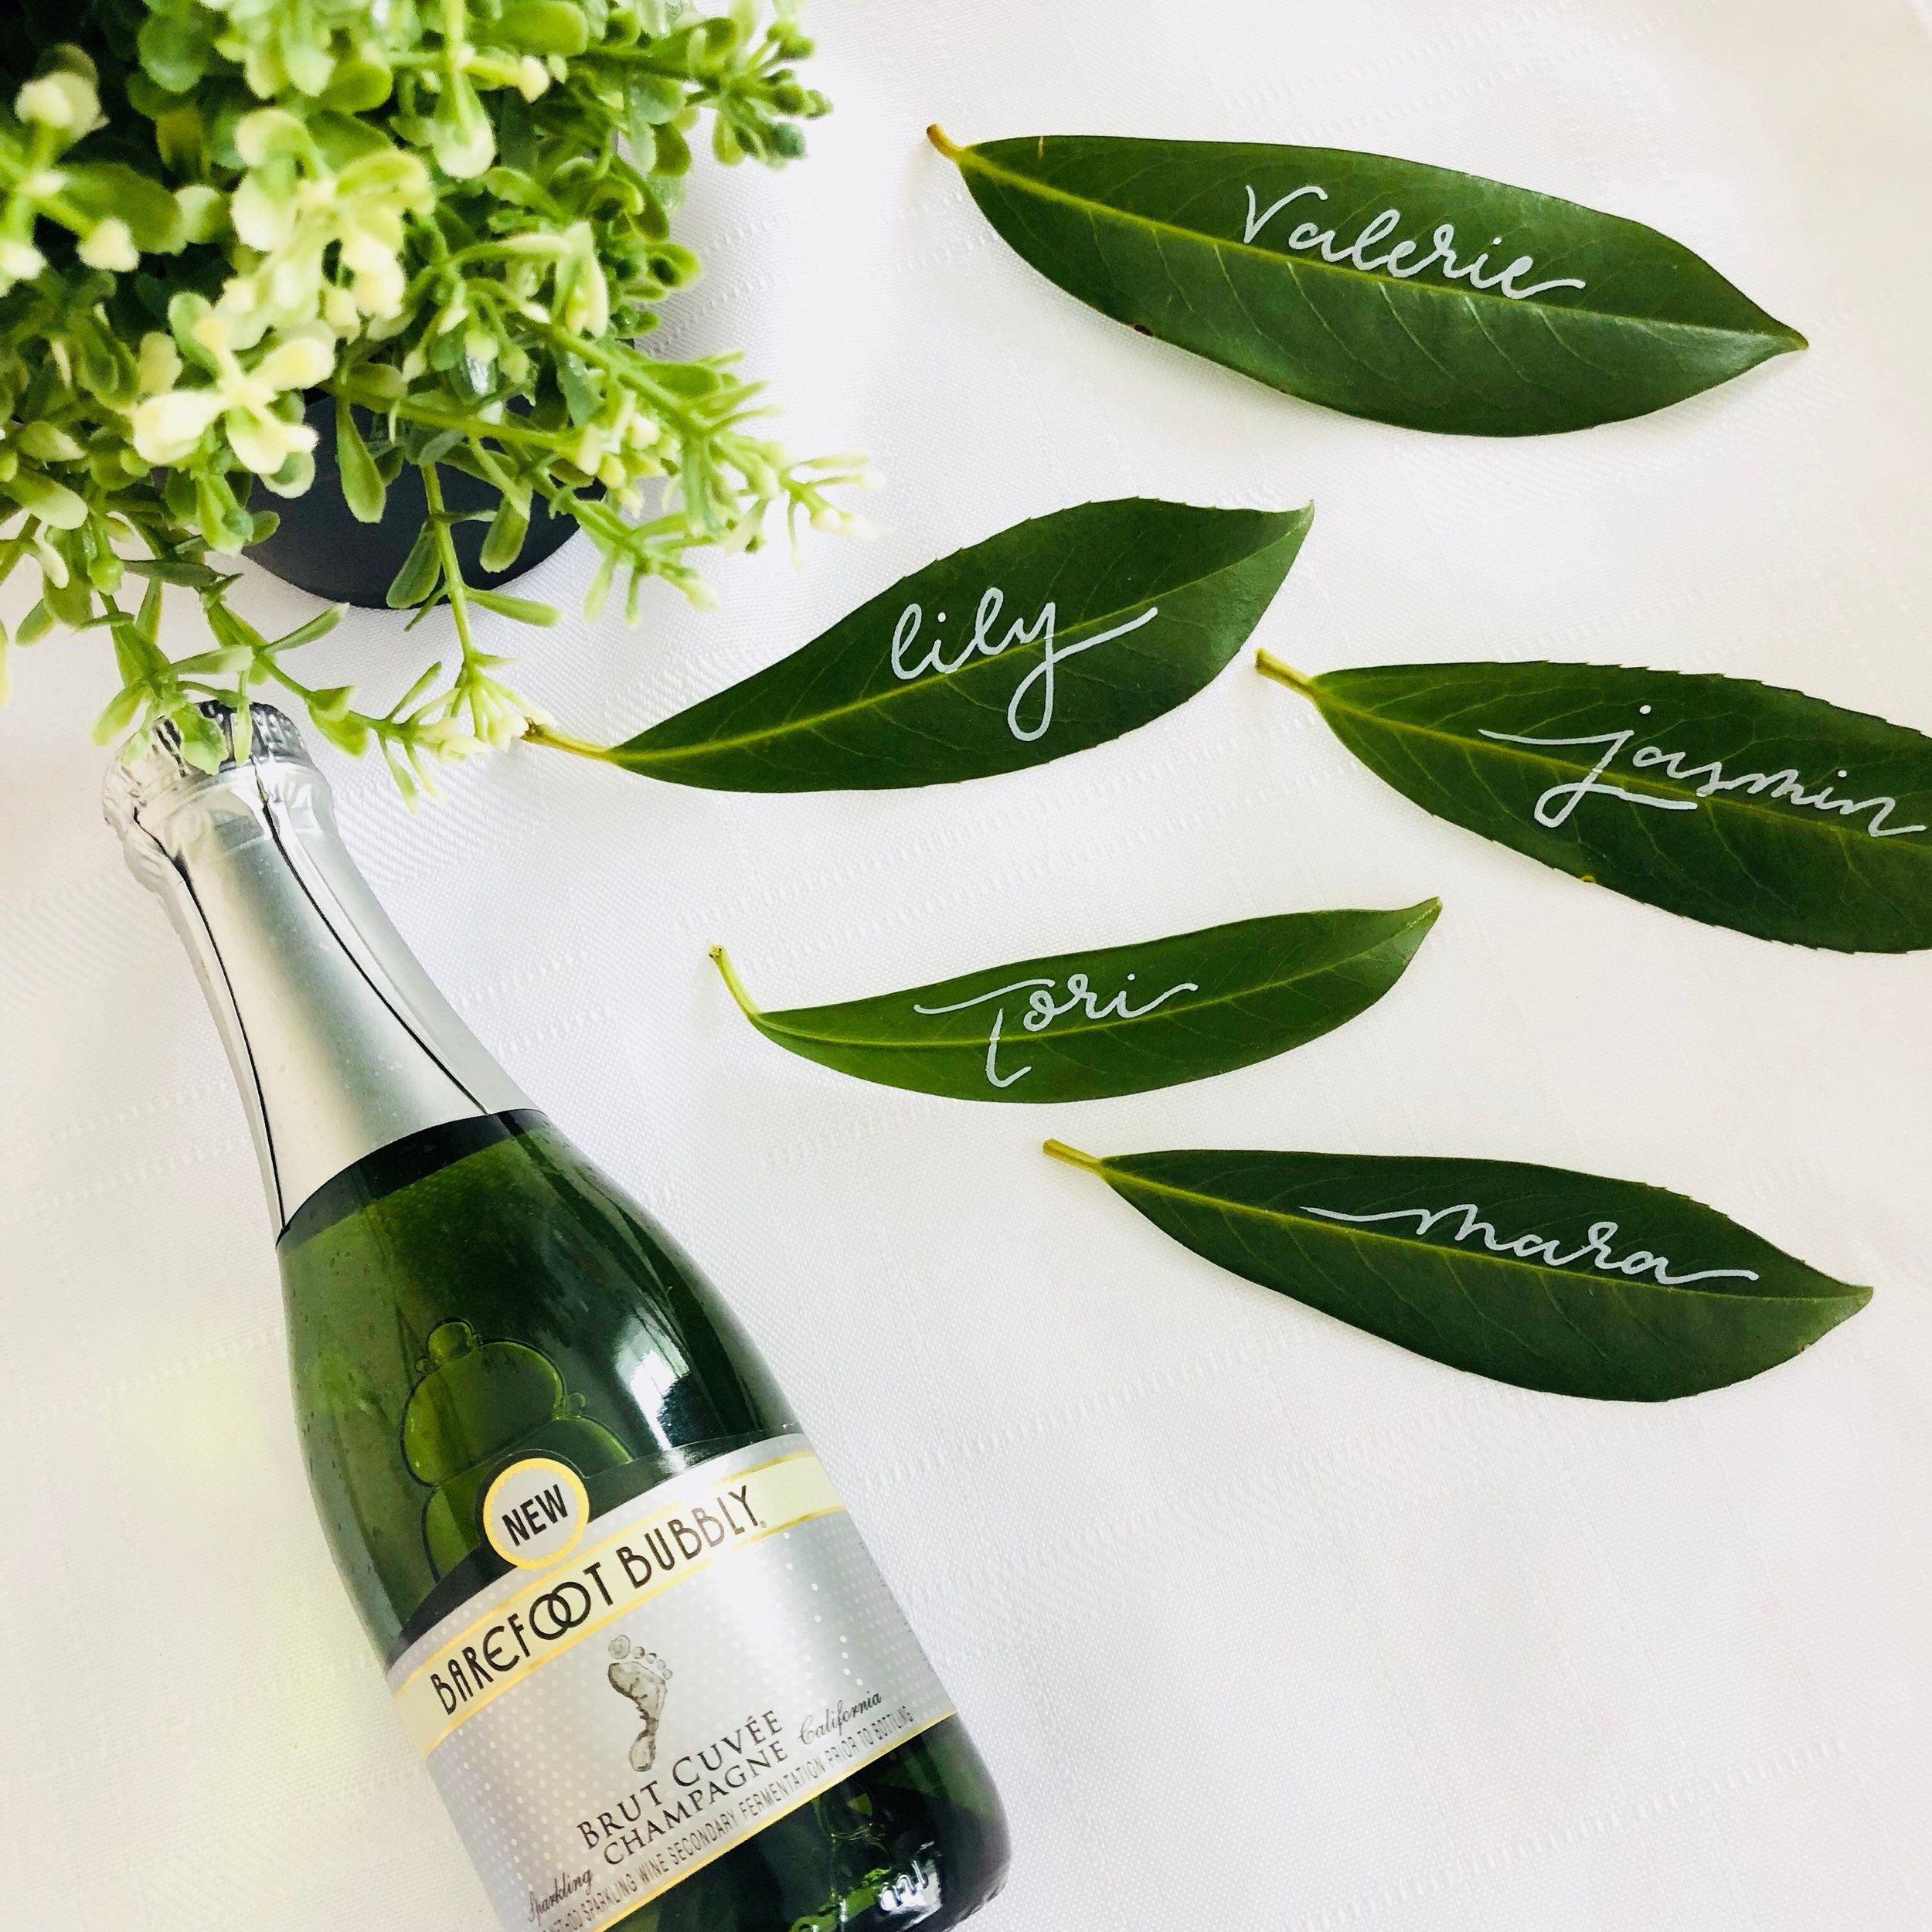 greenery-wedding-ideas-calligraphy-leaves-escort-name-cards